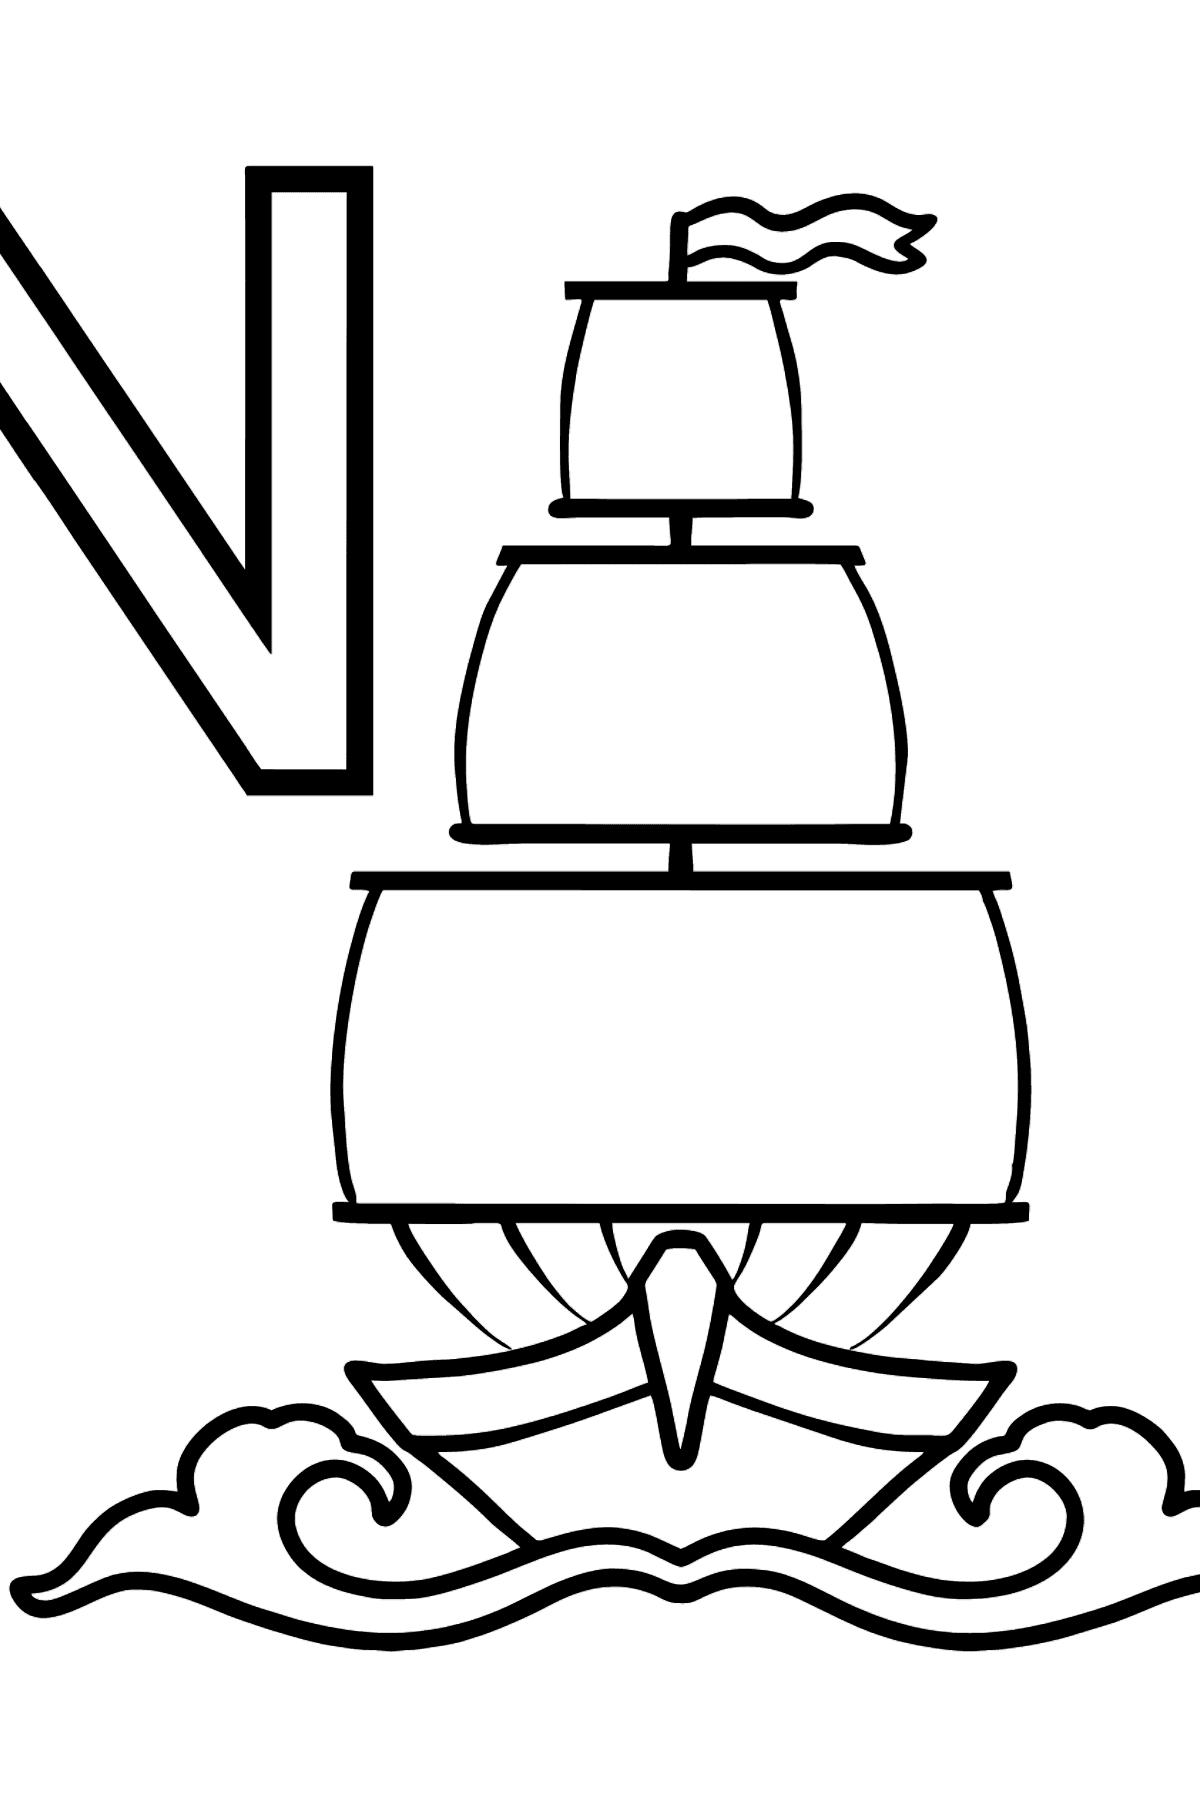 Spanish Letter N coloring pages - NAVE - Coloring Pages for Kids